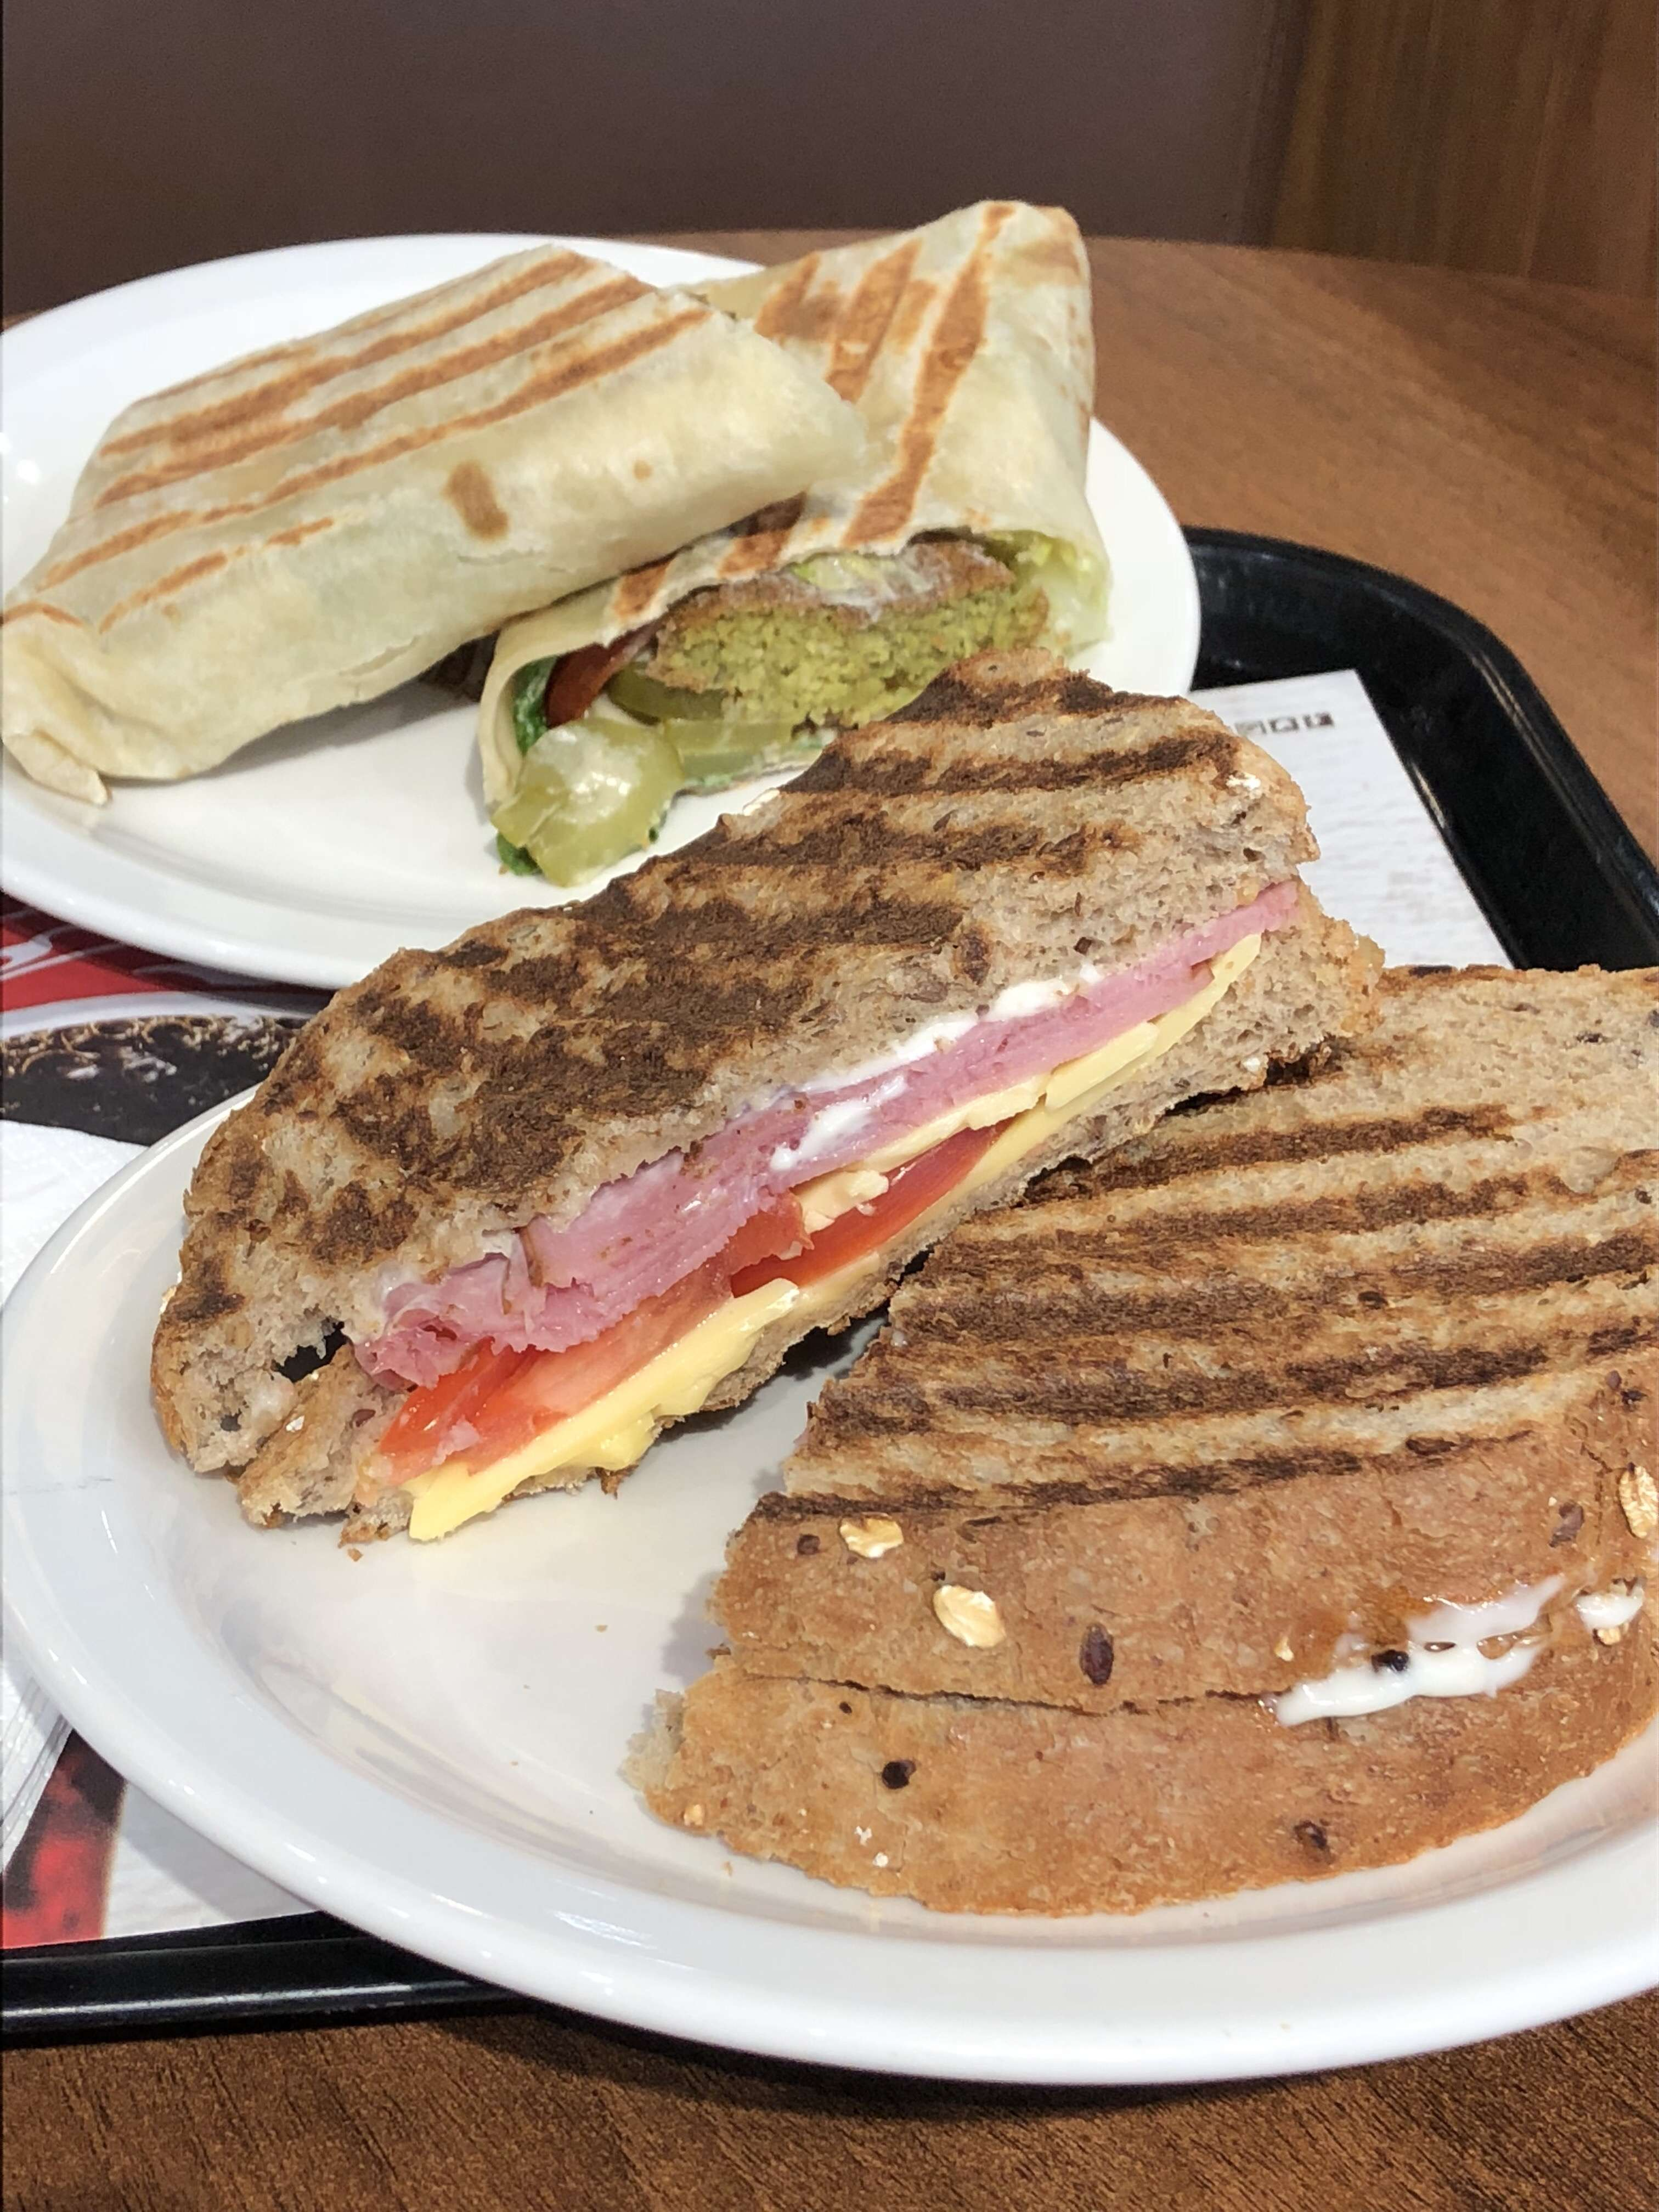 Turkey and cheese AED 22 and falafel wrap AED 22